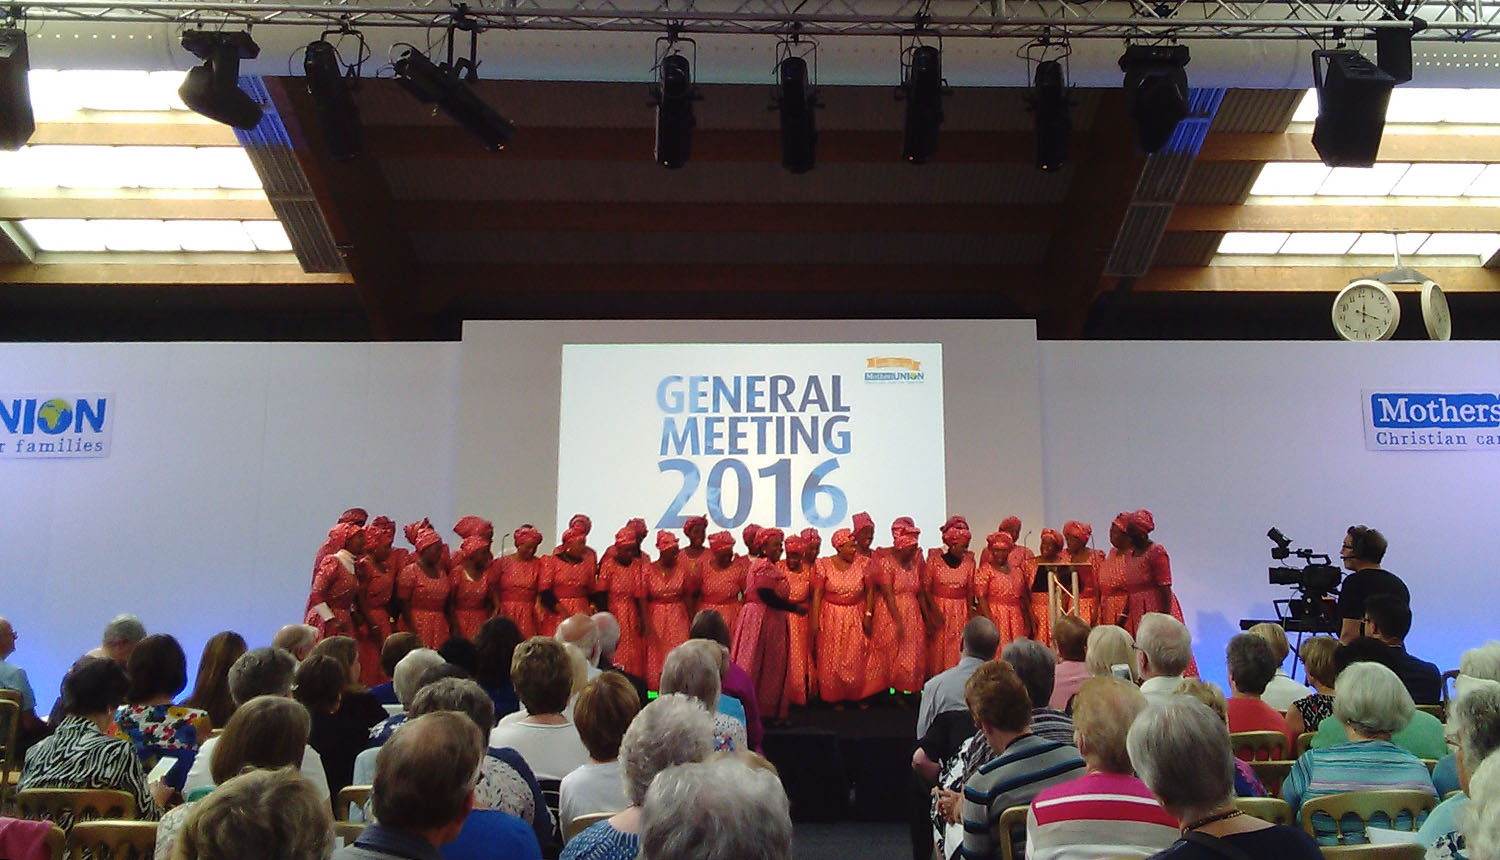 The Mary Sumner choir from Zambia sing at the MU General Meeting